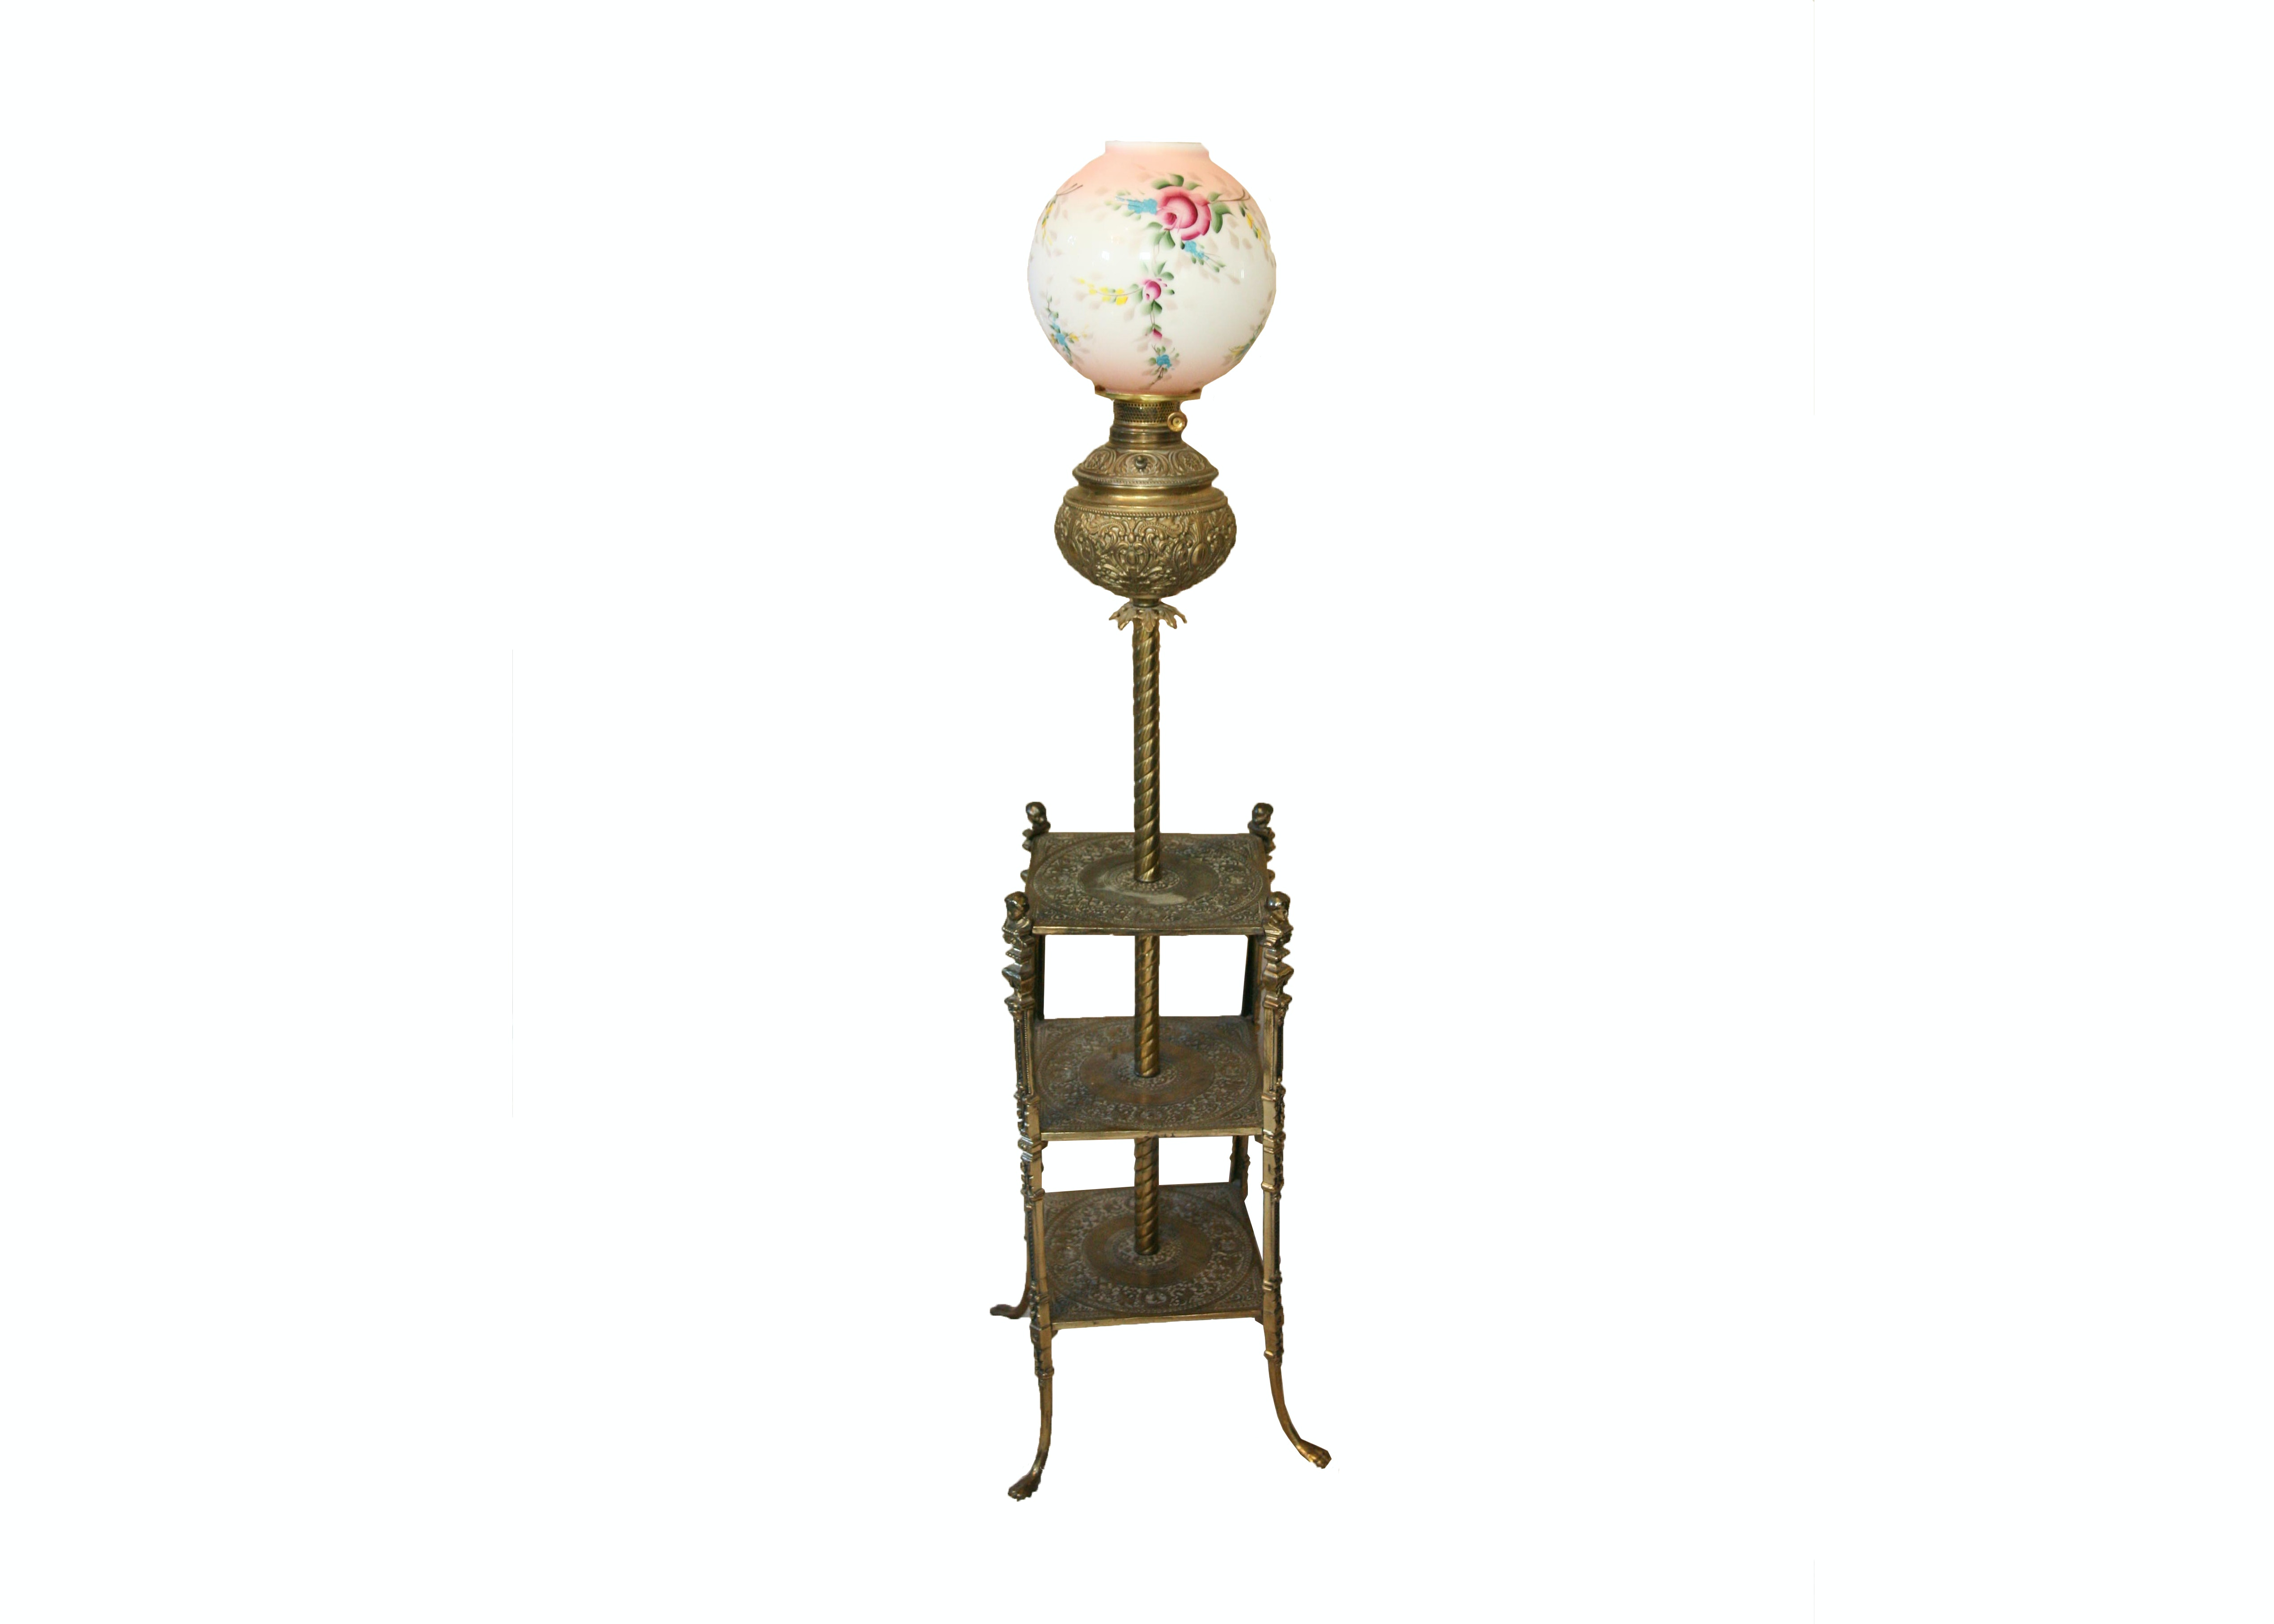 Vintage Parlor Tray Table Floor Lamp